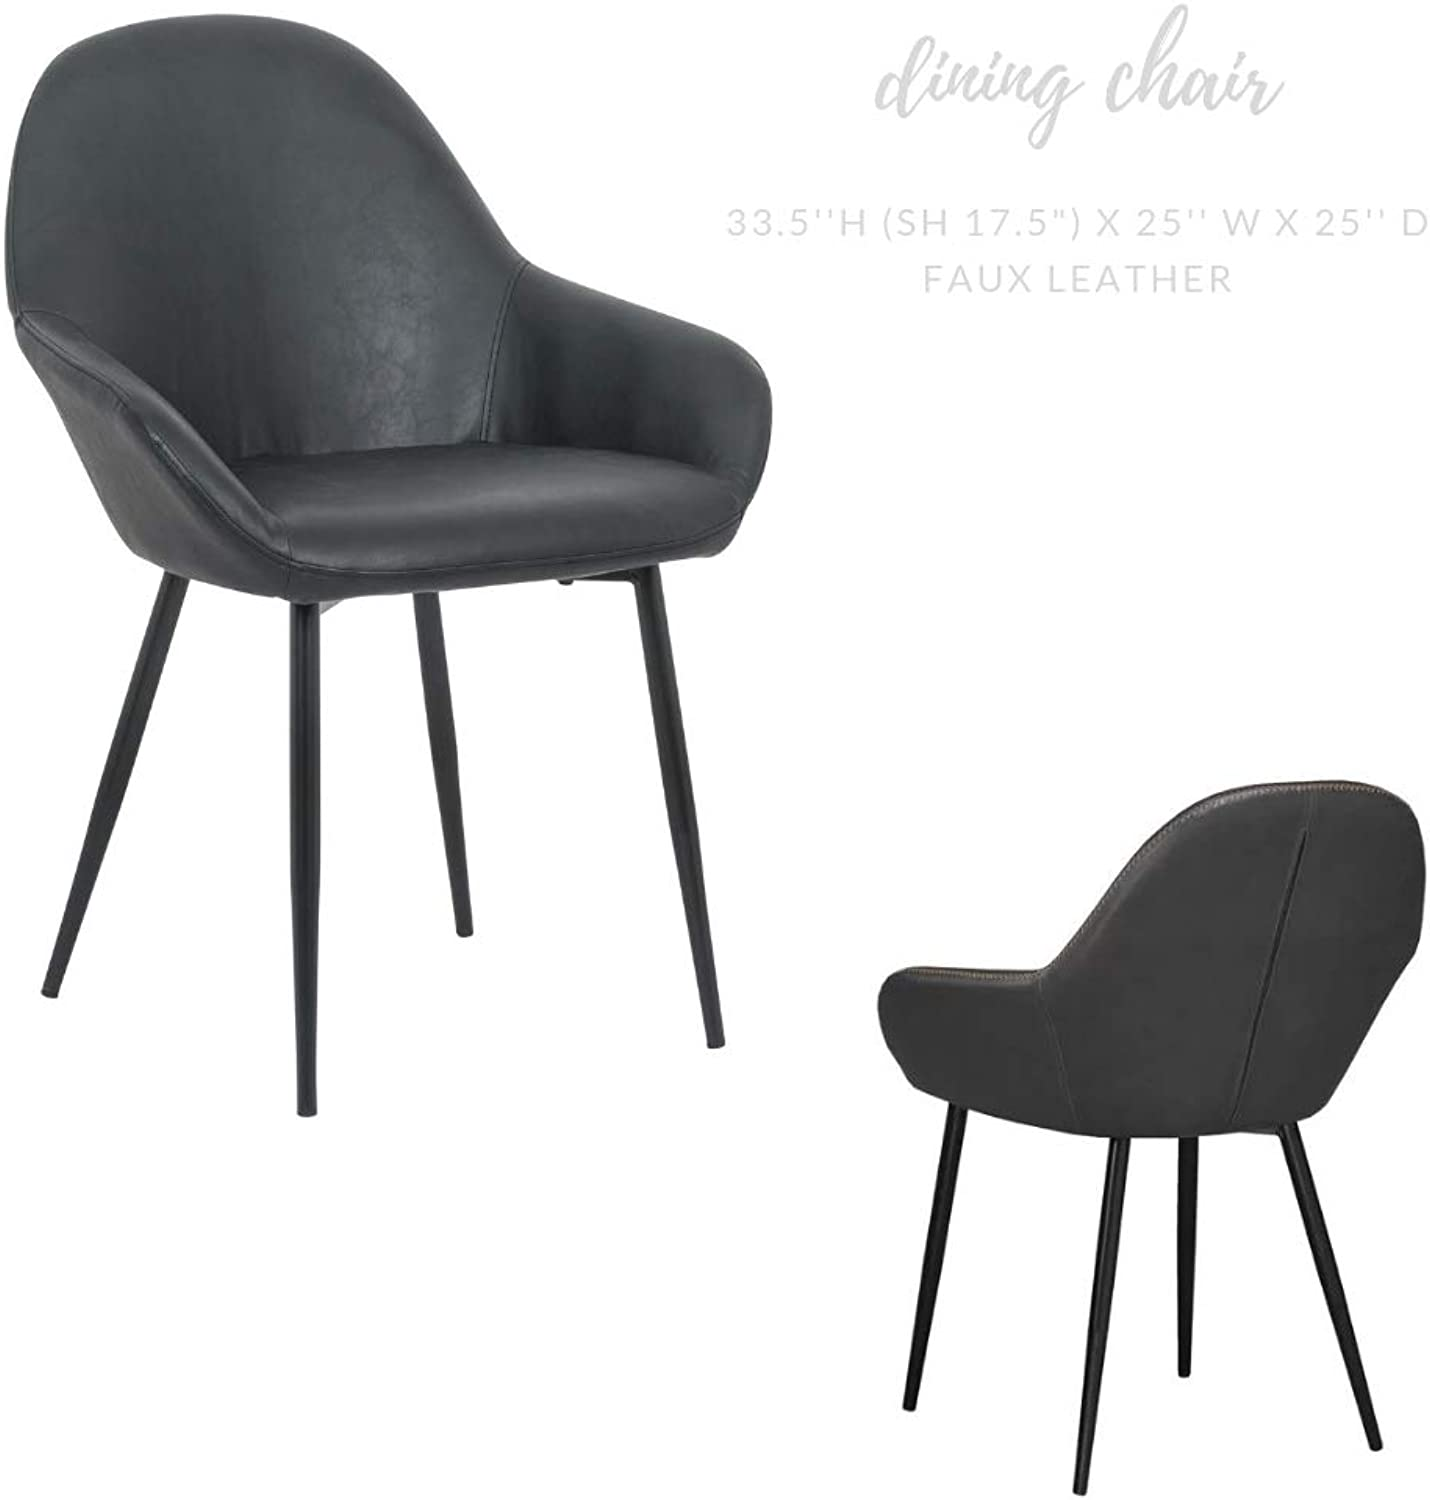 Take Me Home Furniture Burson Arm Chair in Black, Faux Leather with Black Metal Legs, Dining Chair, Chair